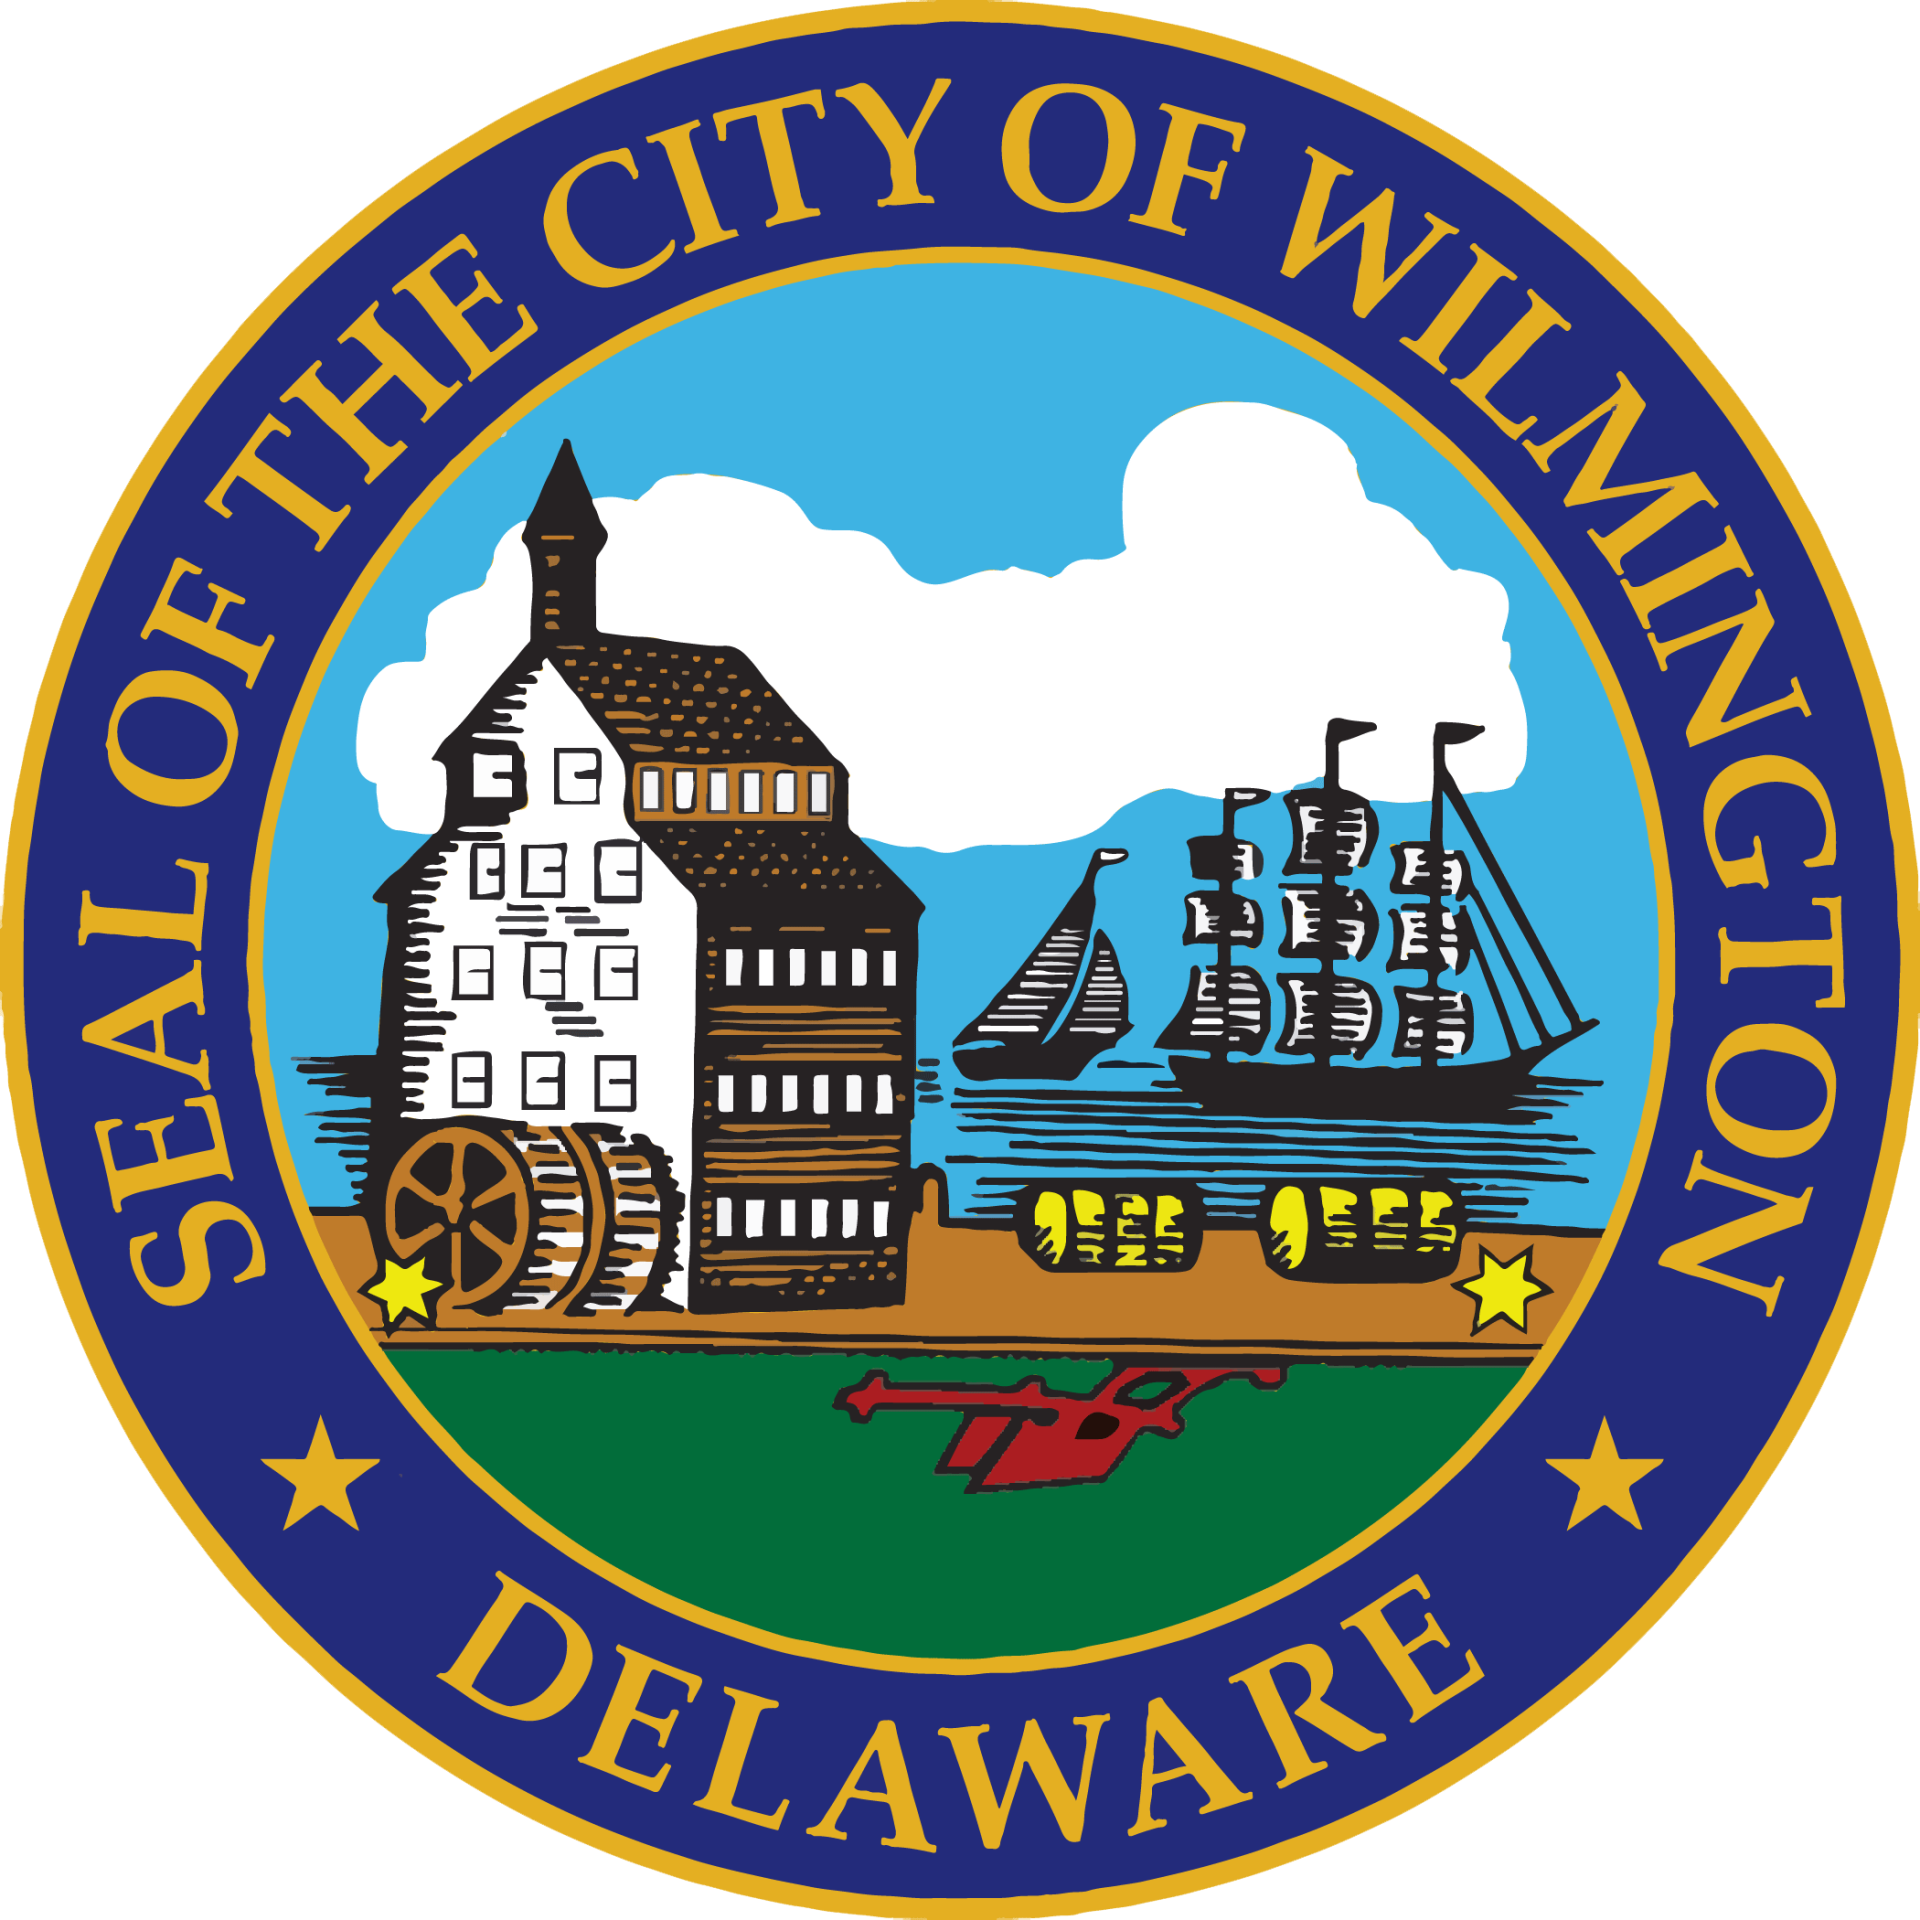 Official City of Wilmington color seal